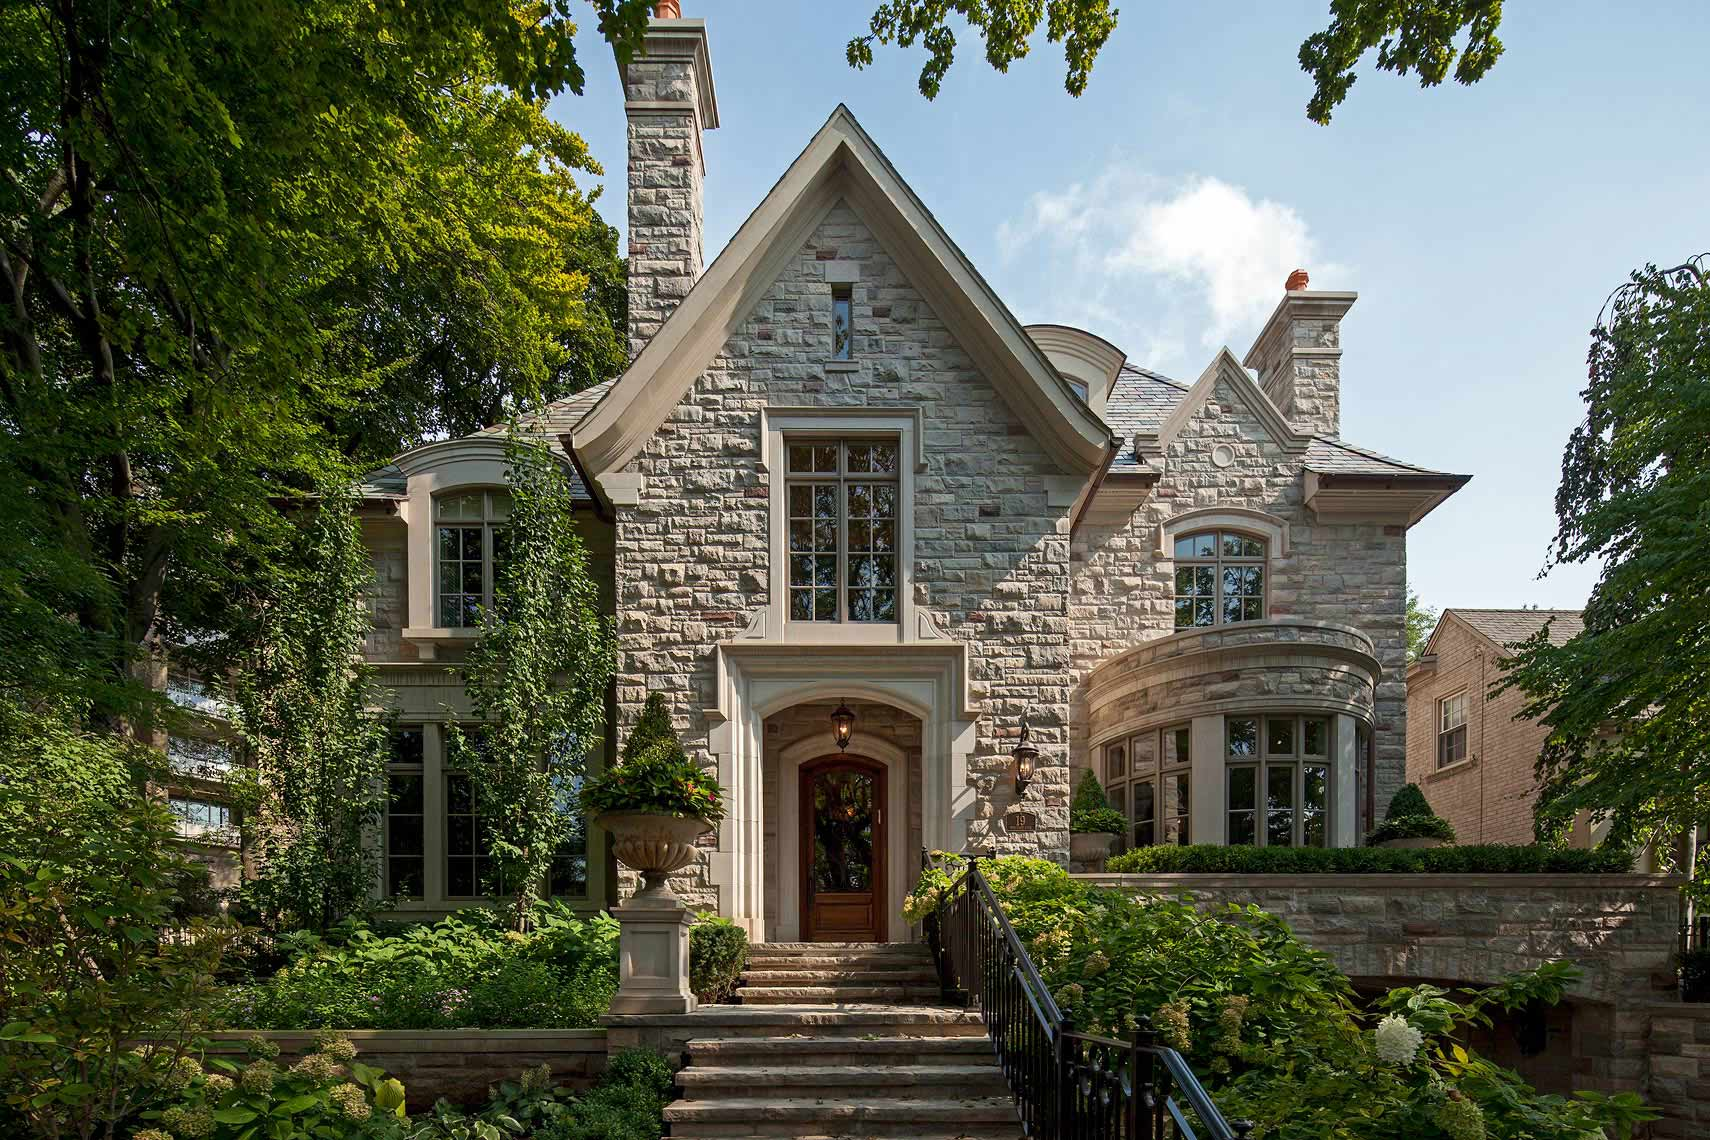 14-customhomes-tudorstyle-MakowArchitects-015